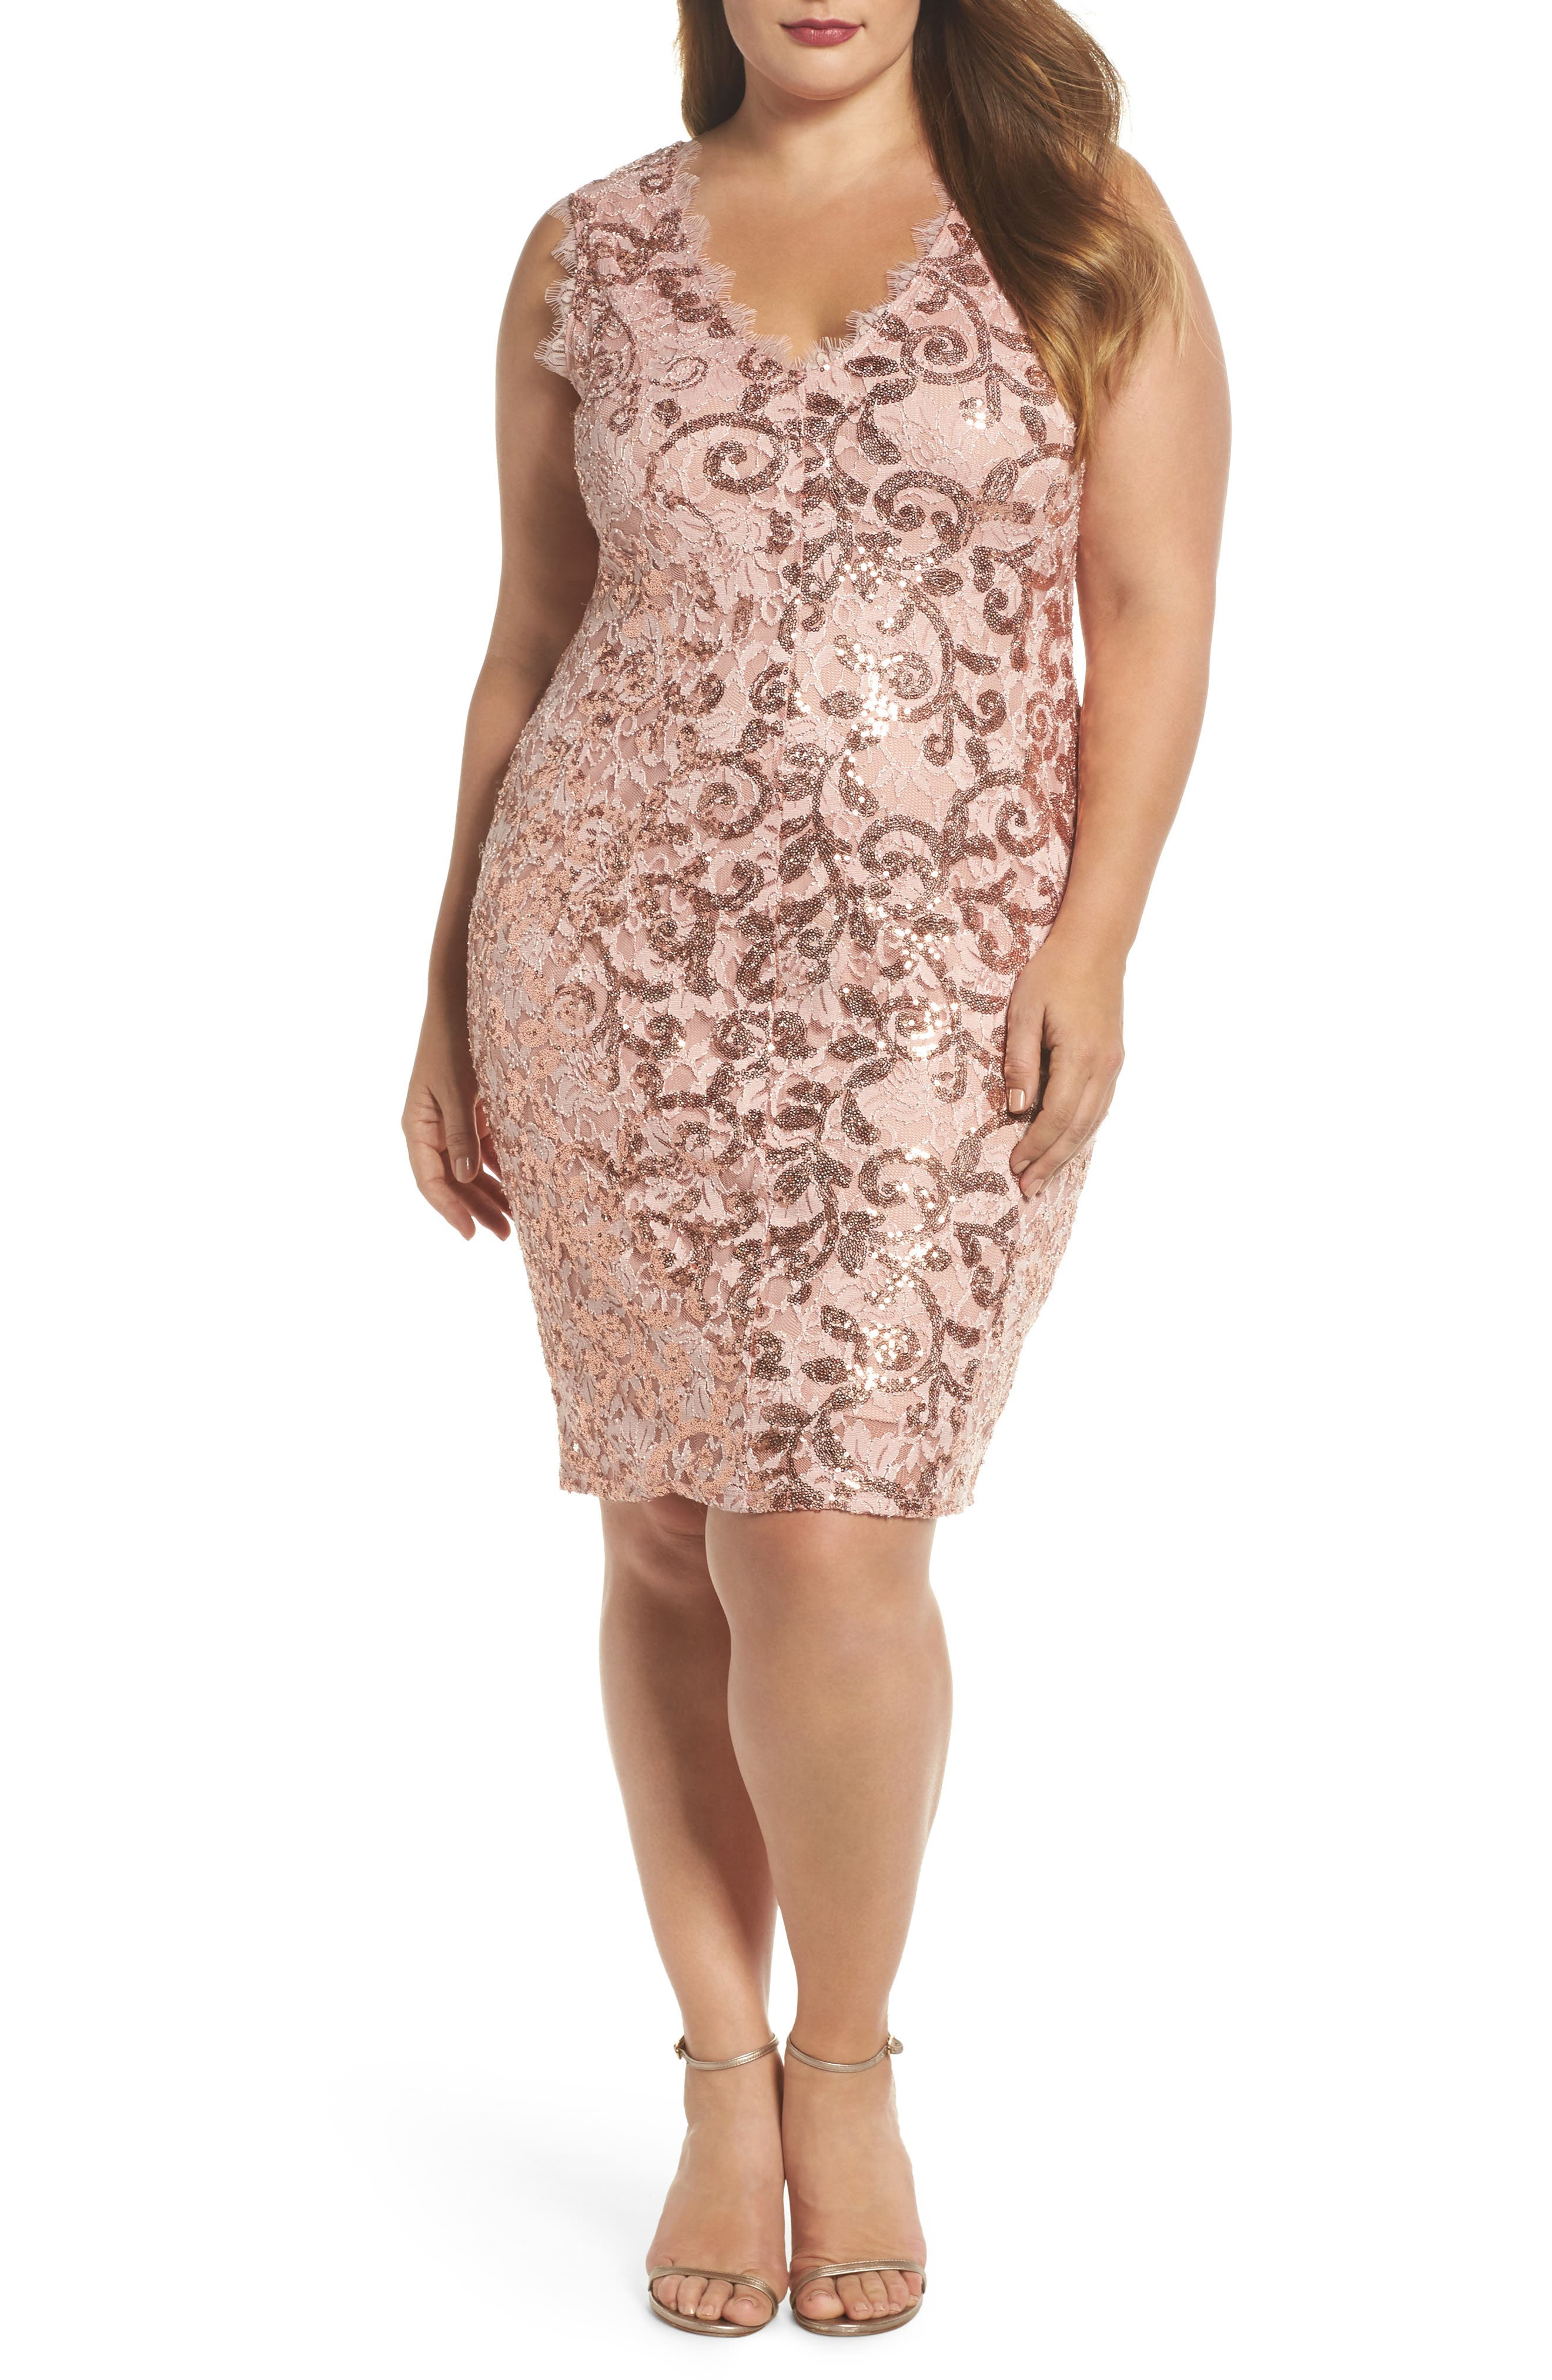 Alternate Image 1 Selected - Marina Sequin Lace Party Dress (Plus Size)